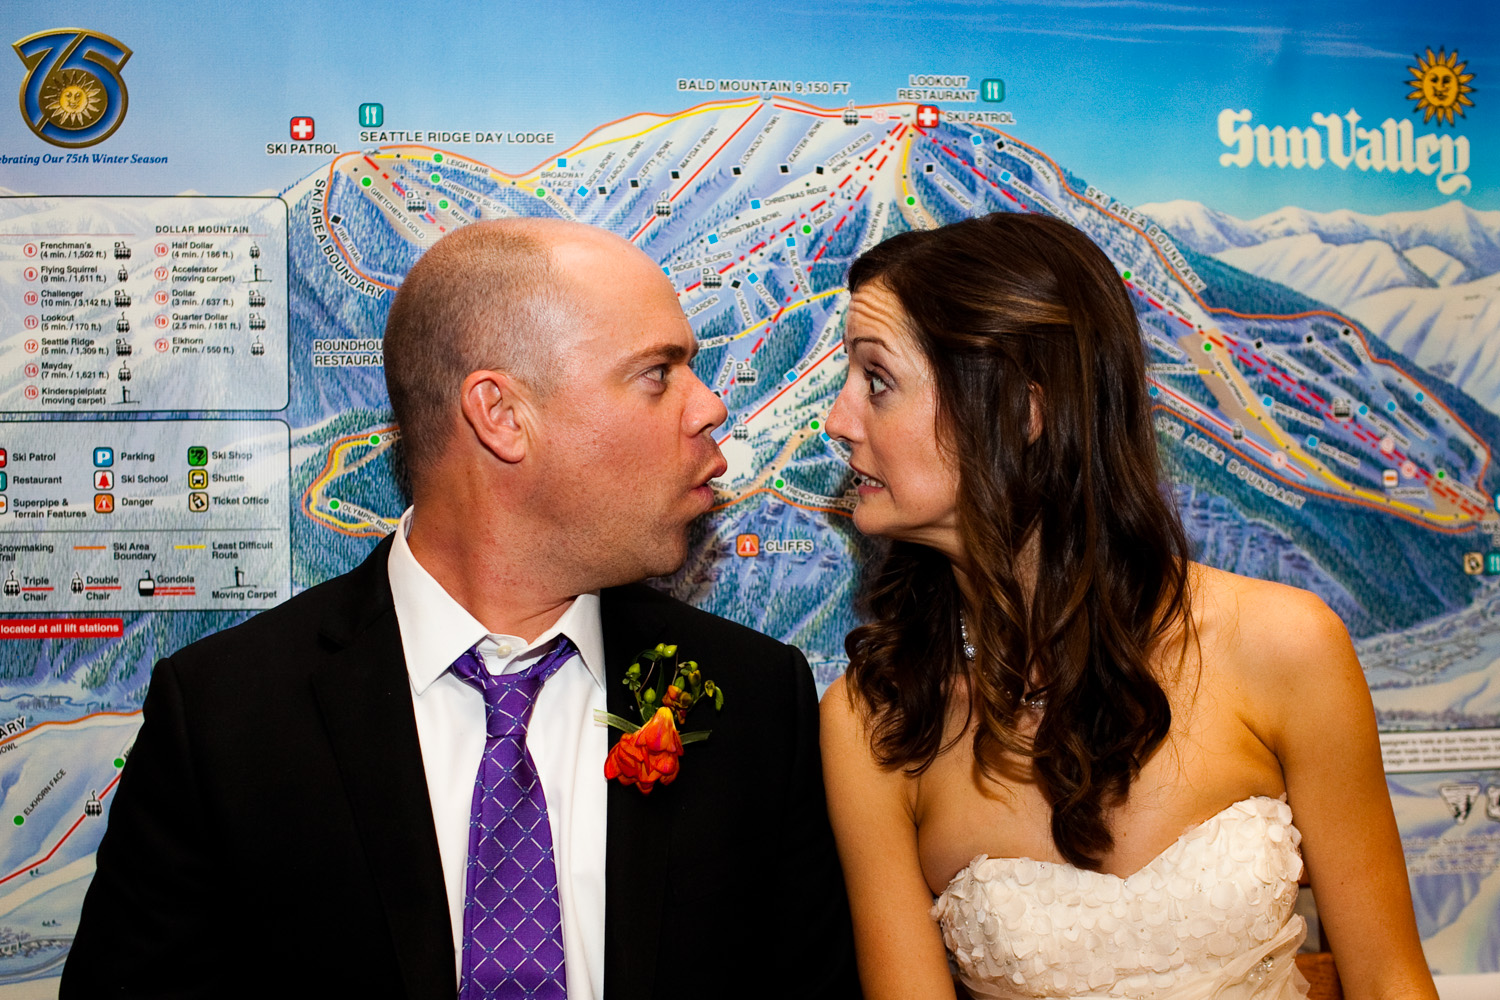 Sun_Valley_Idaho_Wedding034